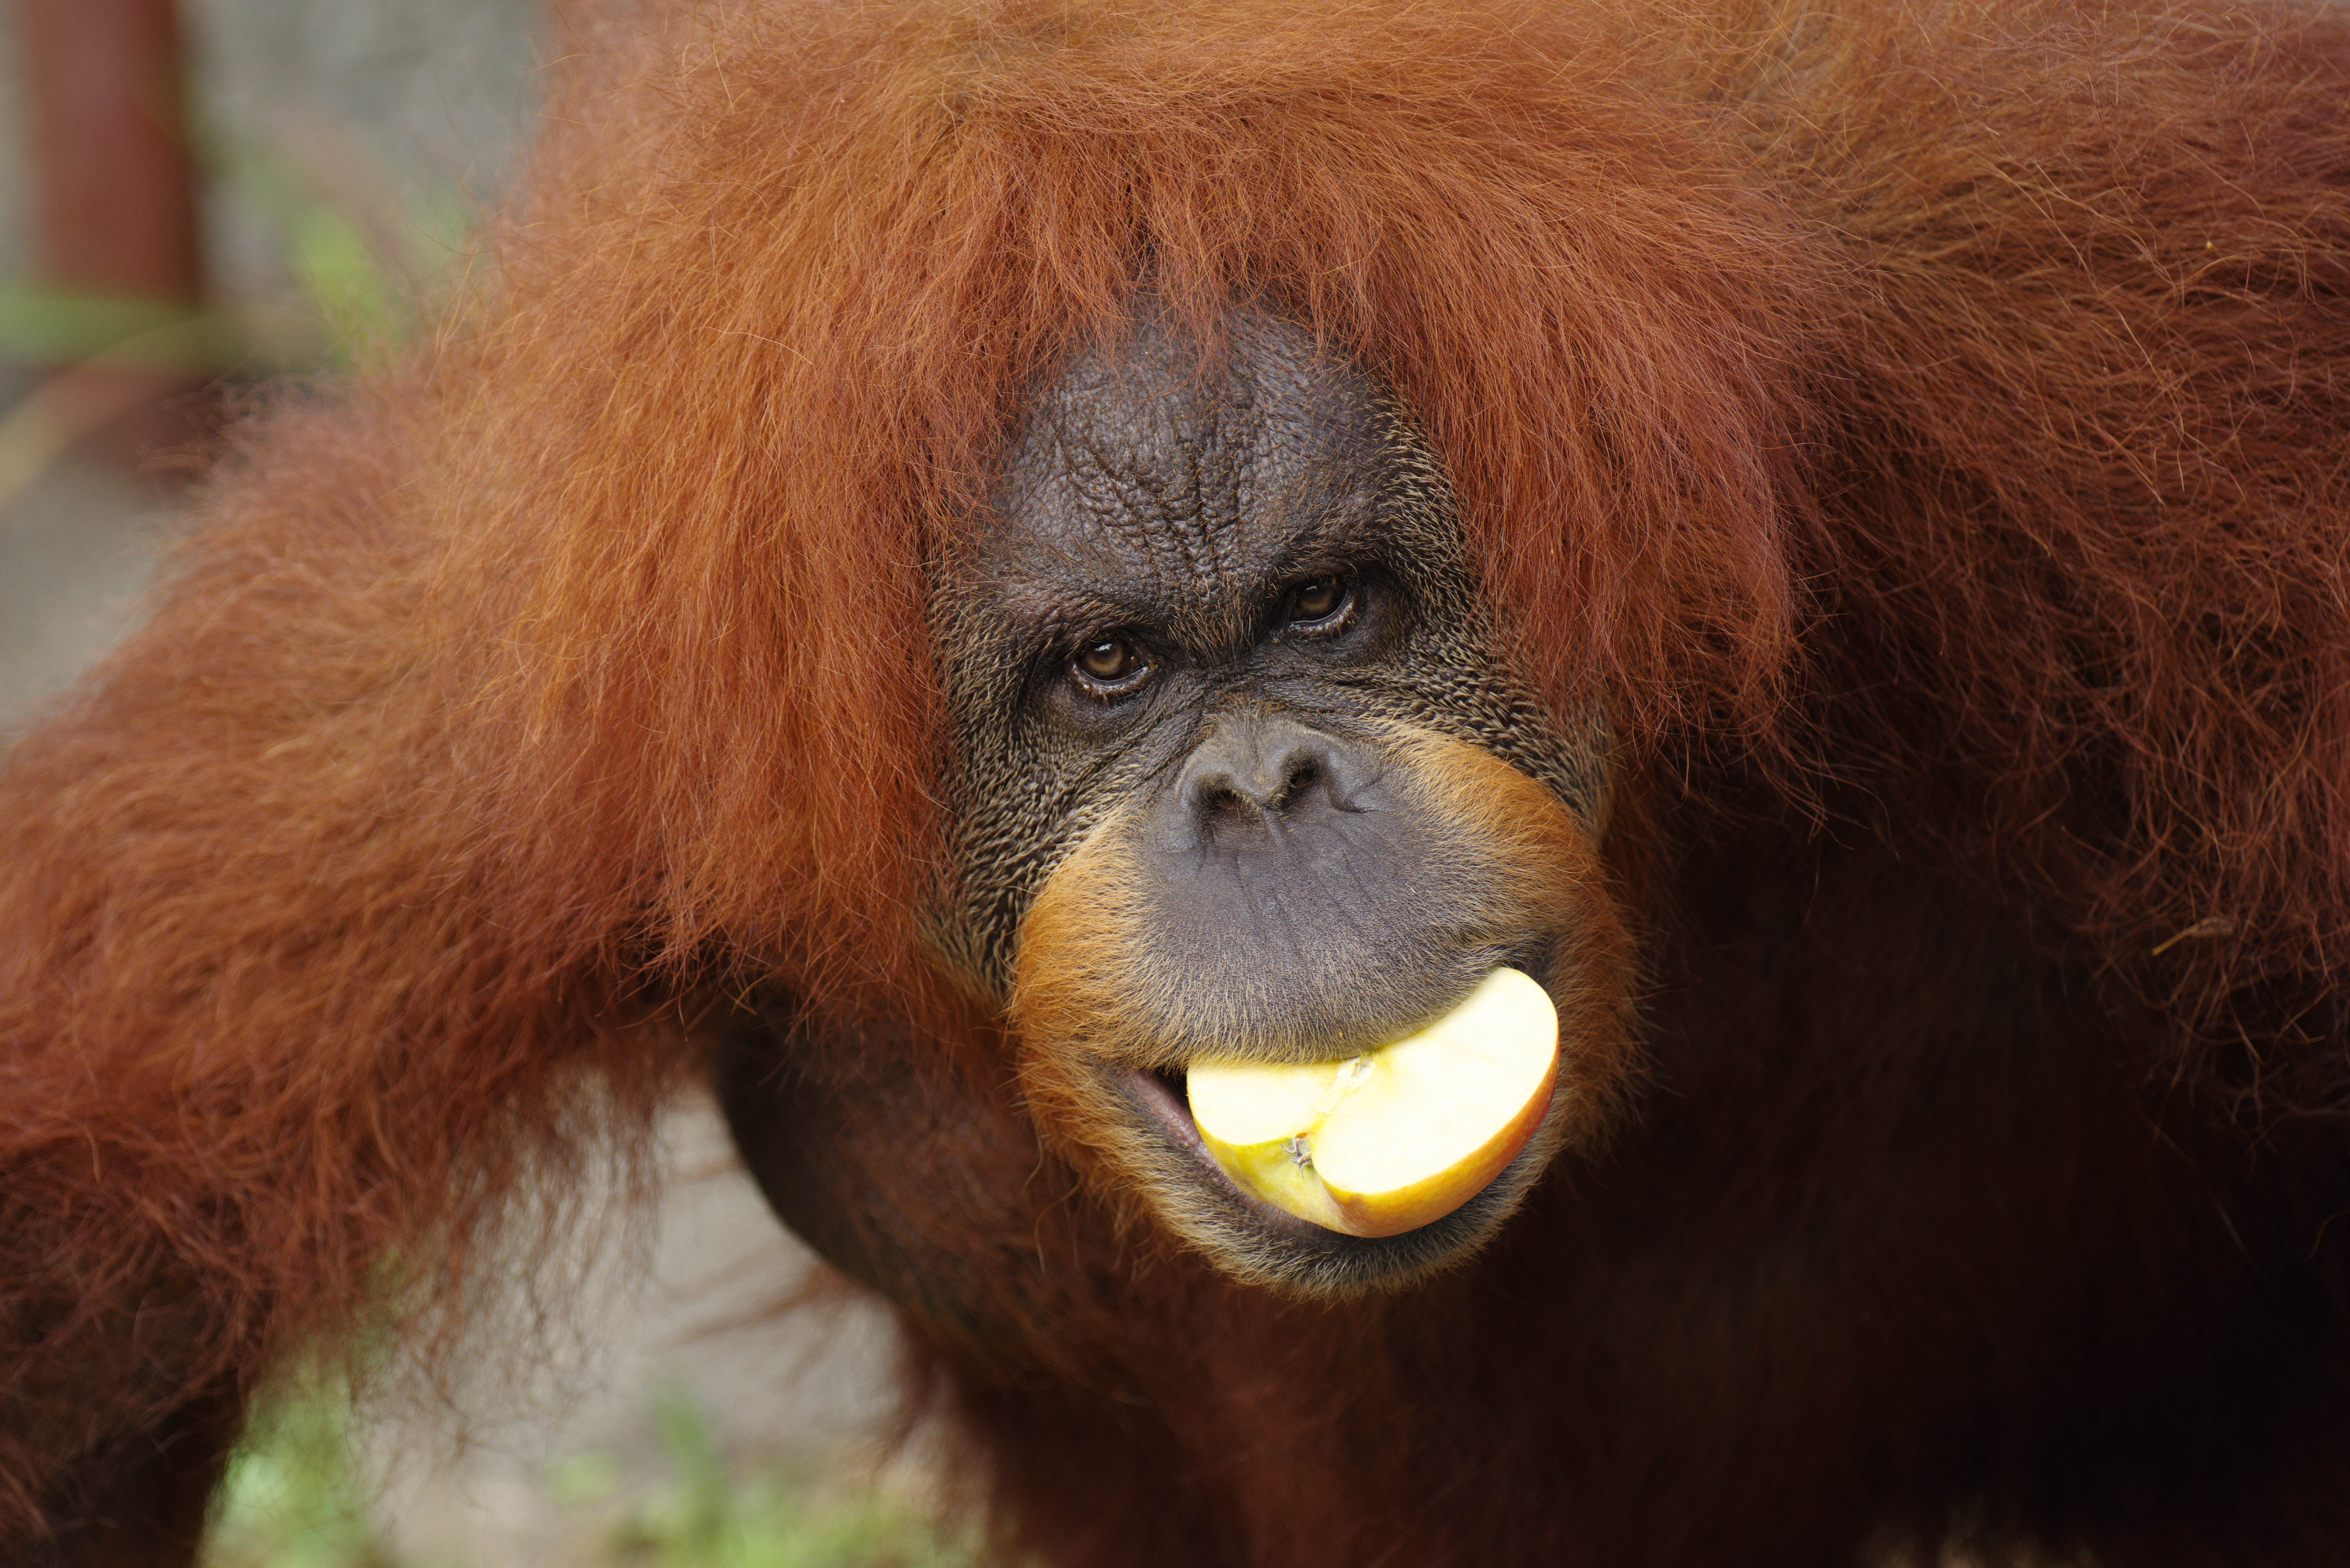 female orangutans steal food from males as a test